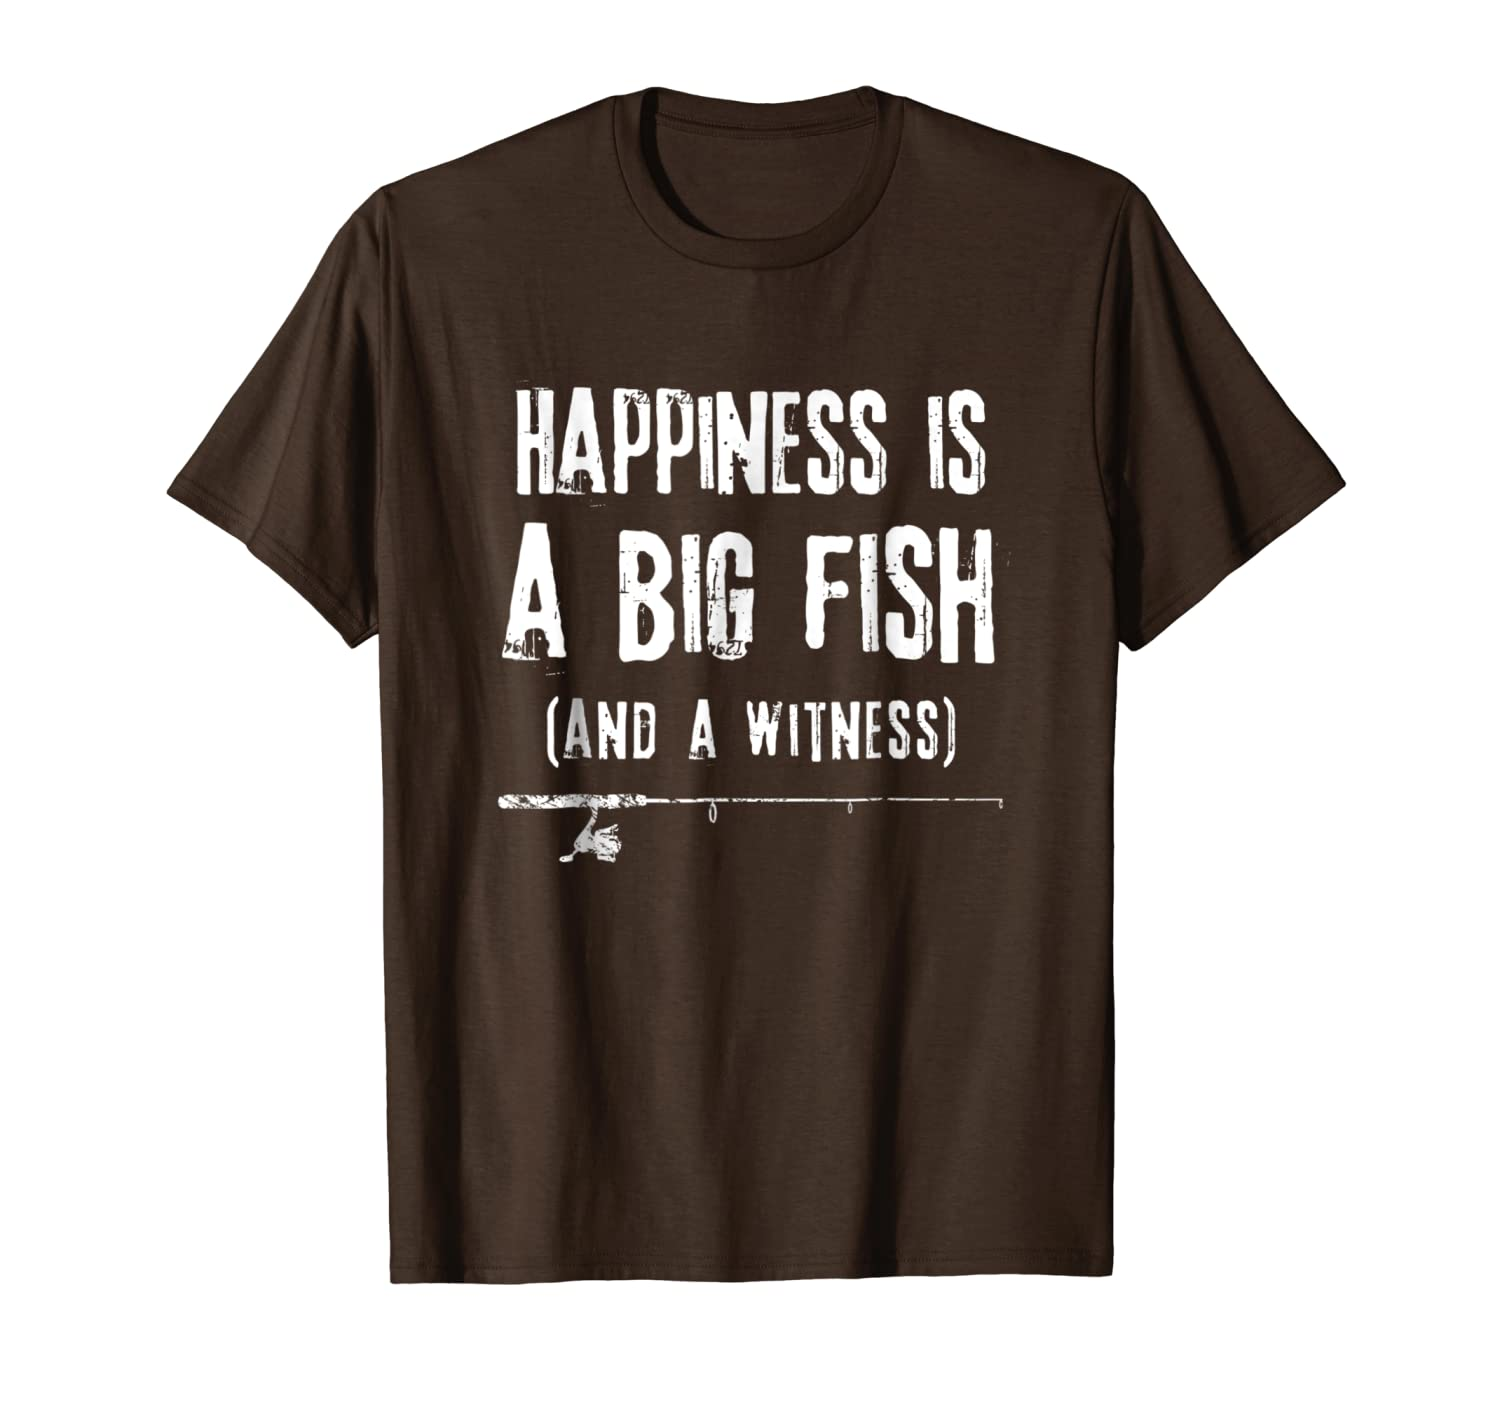 Happiness is A Big Fish & A Witness Shirt Funny Fishing Gift Unisex Tshirt